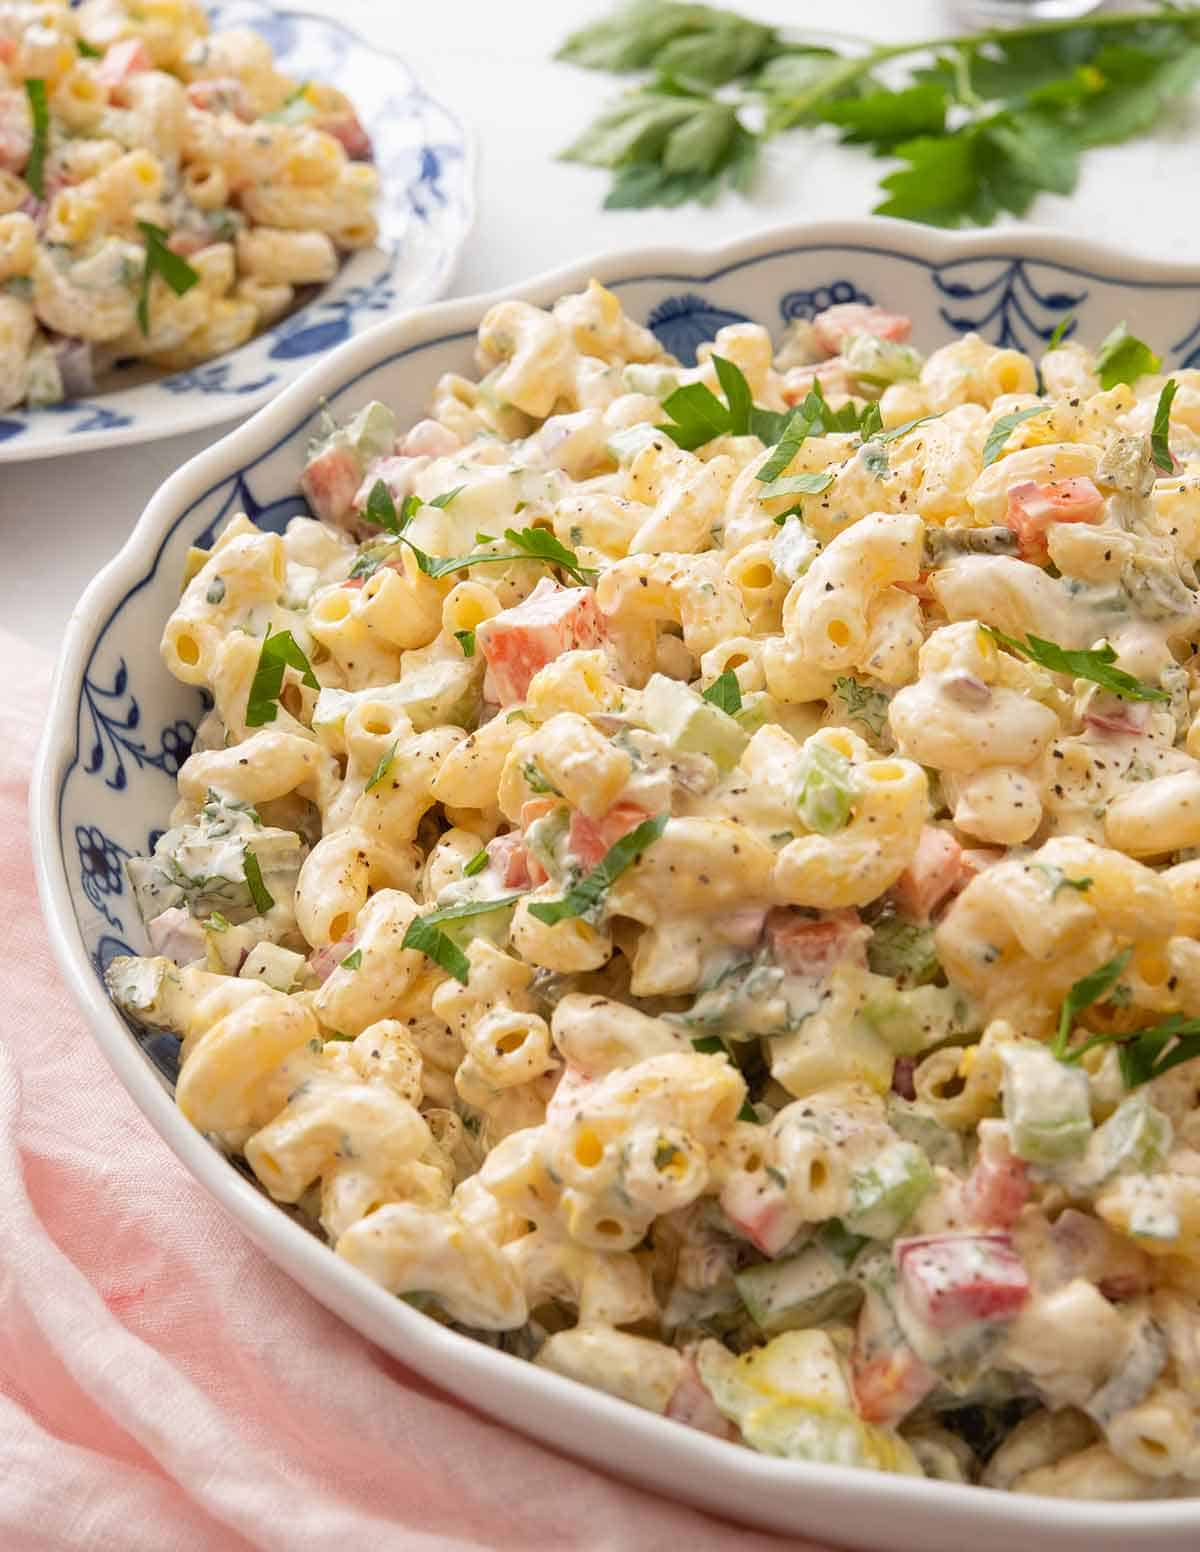 A large blue and white bowl of macaroni salad beside a pink linen.